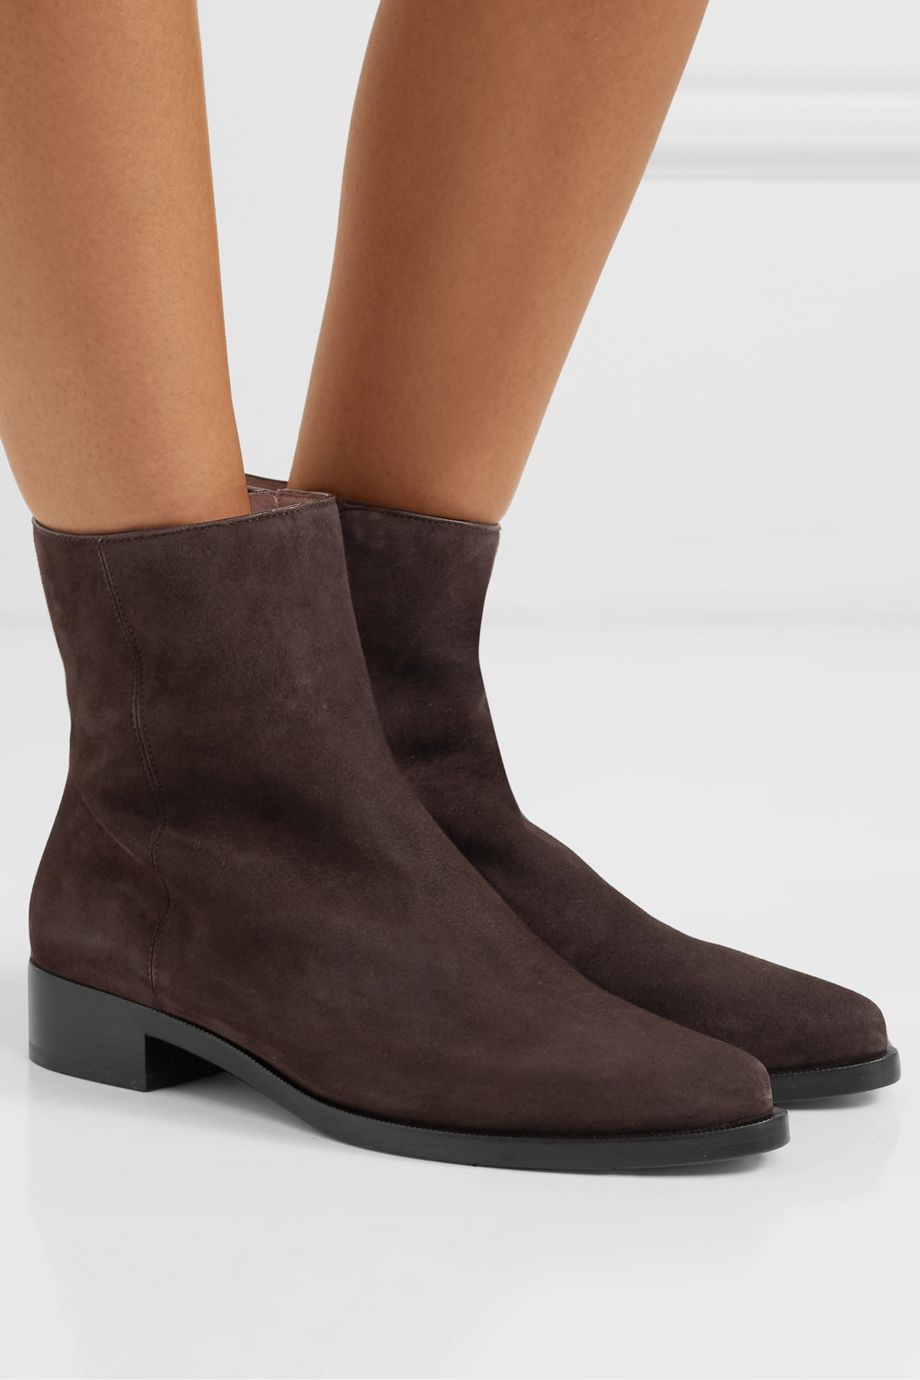 LEGRES 02 suede ankle boots